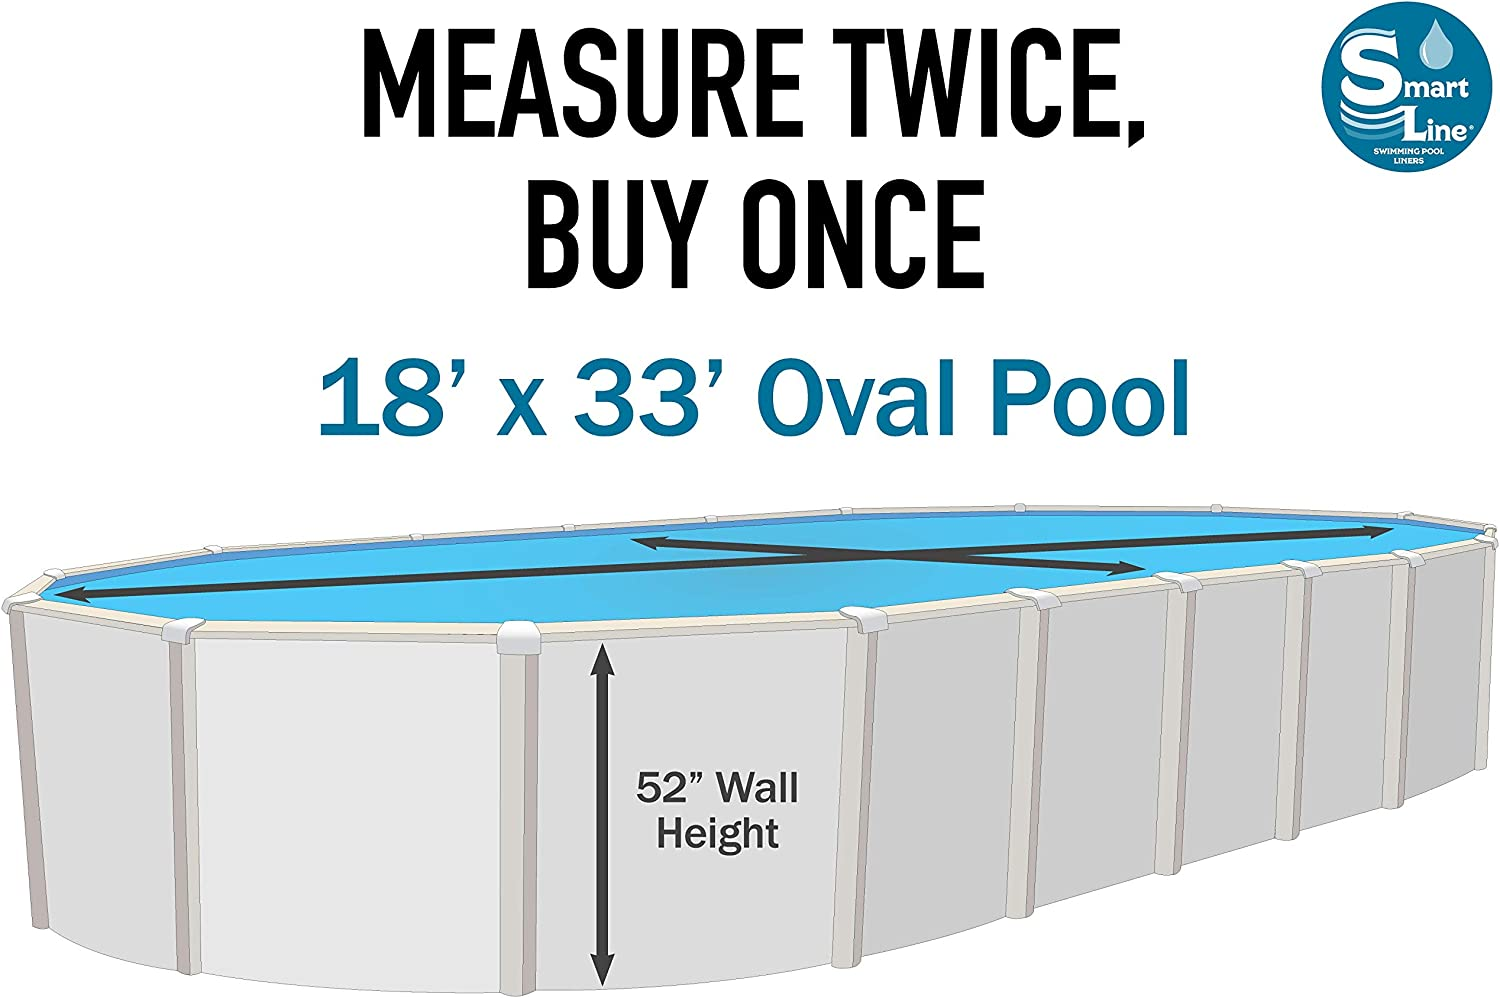 Smartline Tuscan 15-Foot Round Pool Liner UniBead Style 25 Gauge Virgin Vinyl Material Universal Gasket Kit Included 52-Inch Wall Height Designed for Steel Sided Above-Ground Swimming Pools